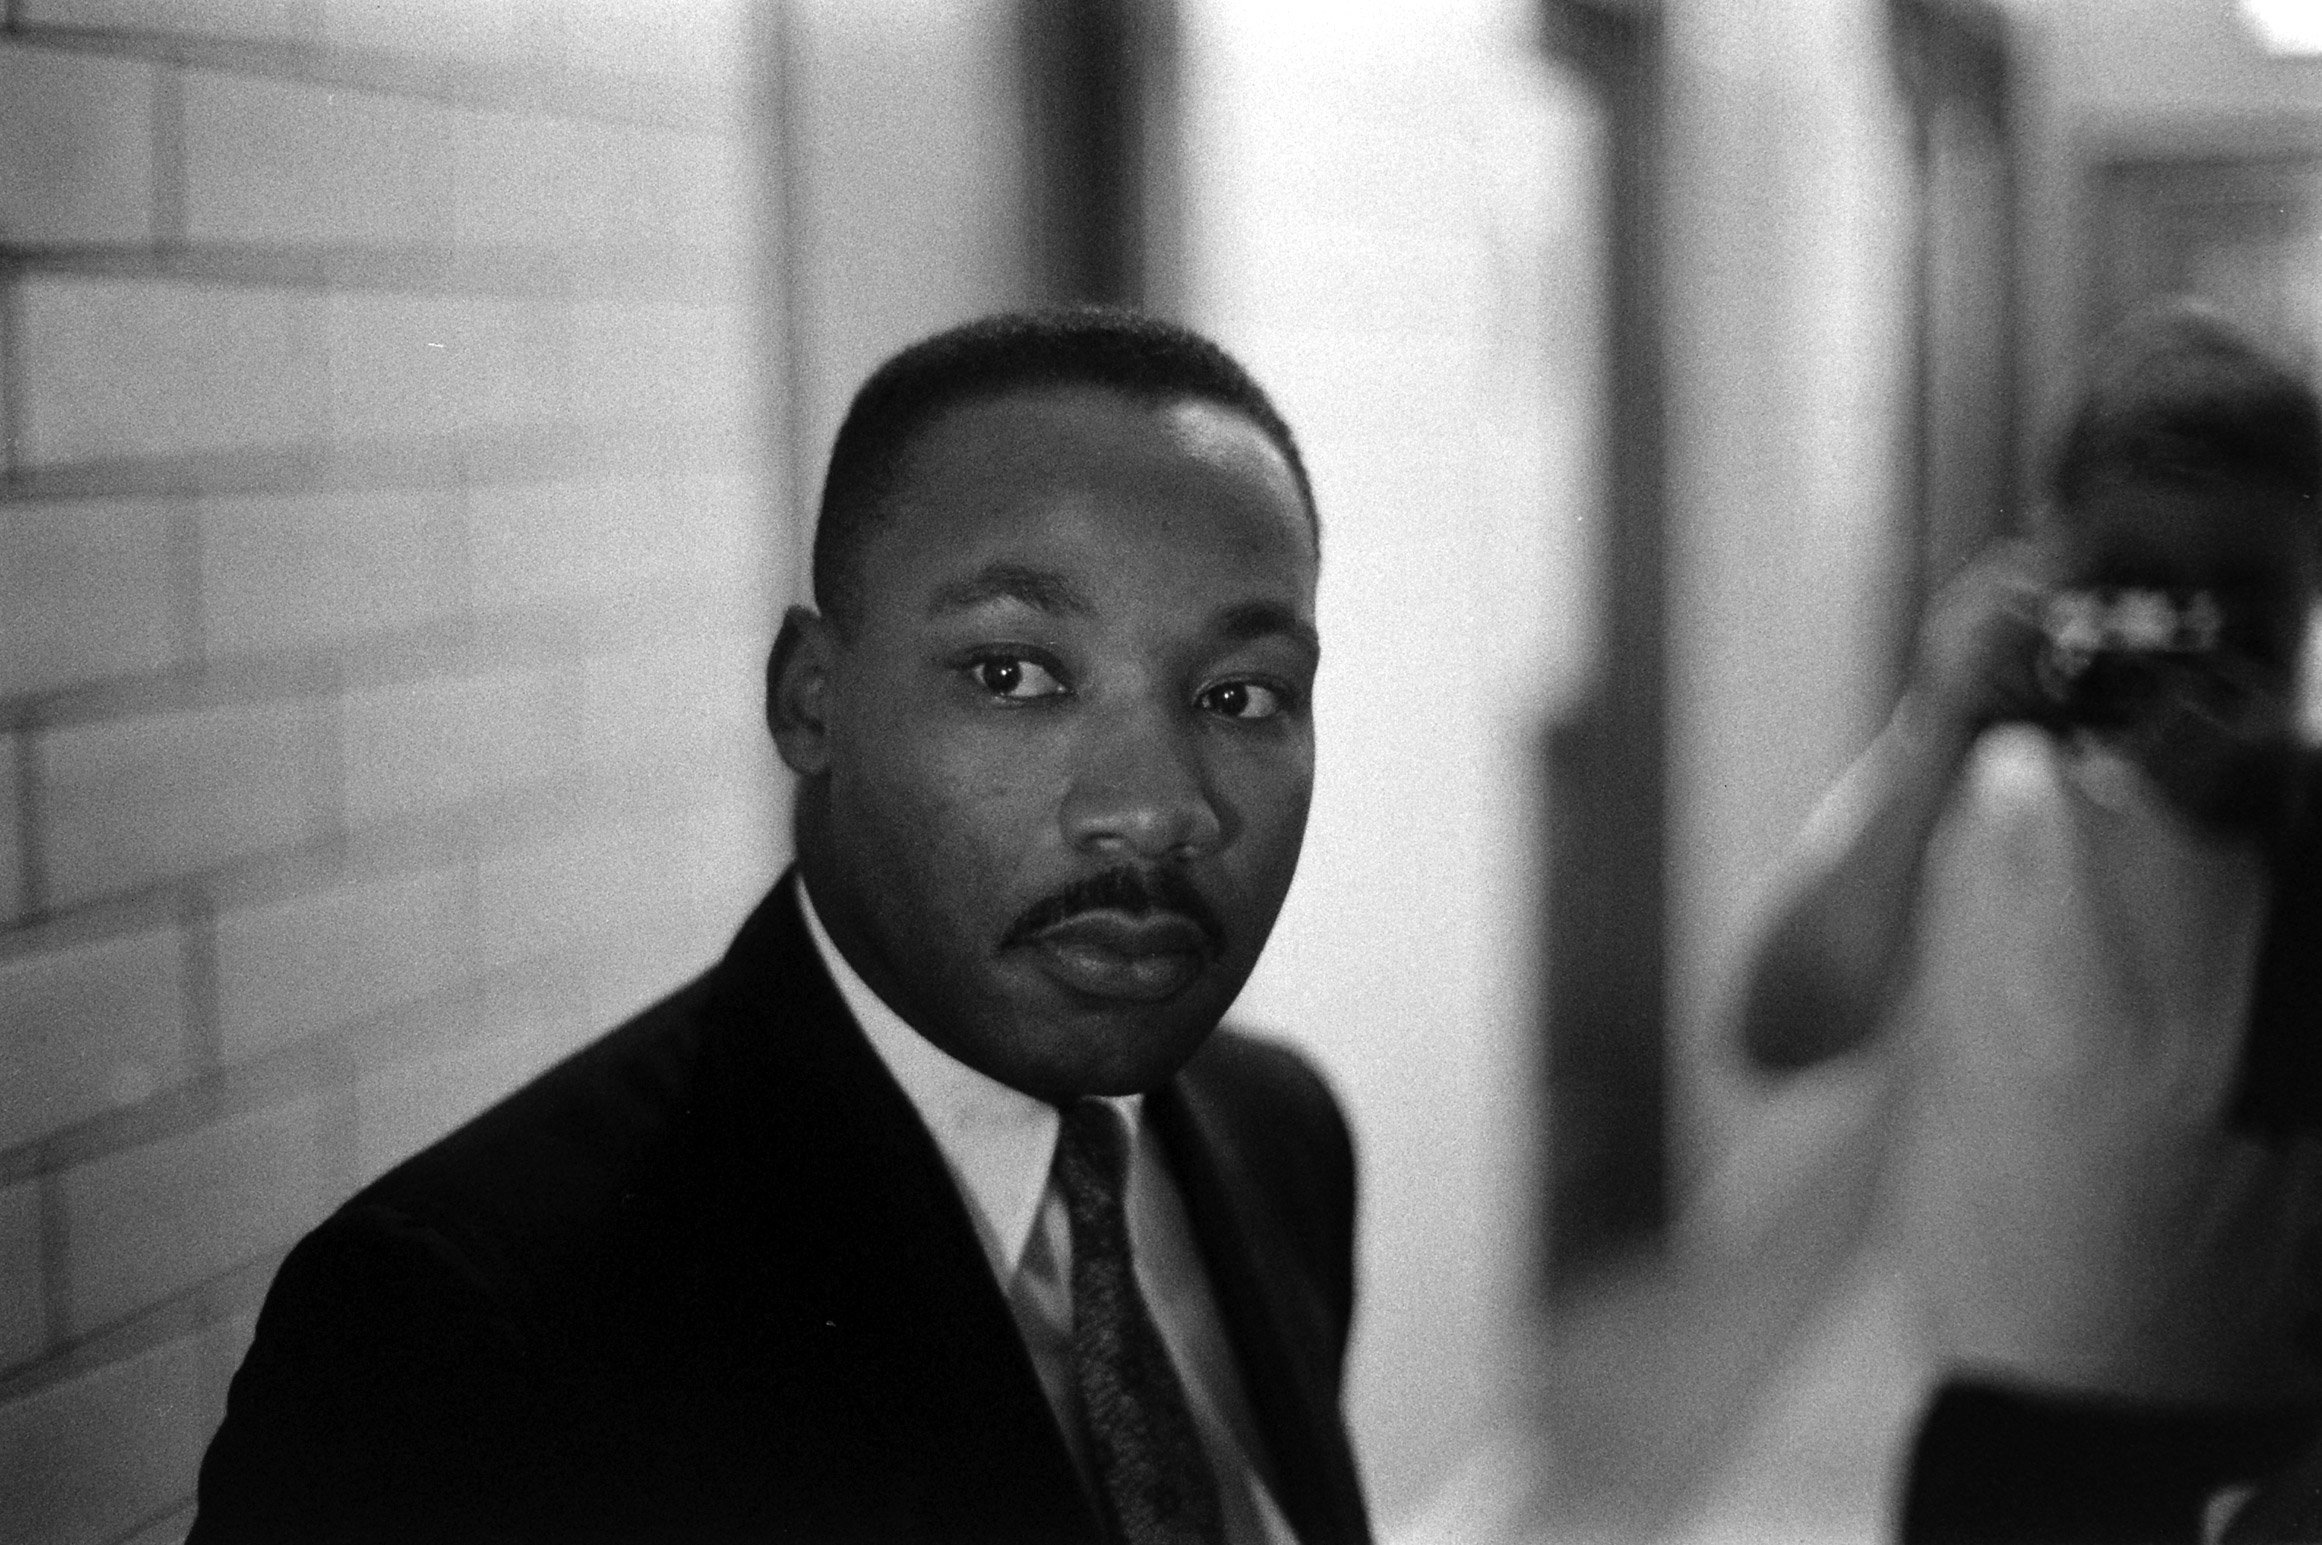 Martin Luther King Jr 12 Powerful Photos of a Leader Timecom 2322x1545